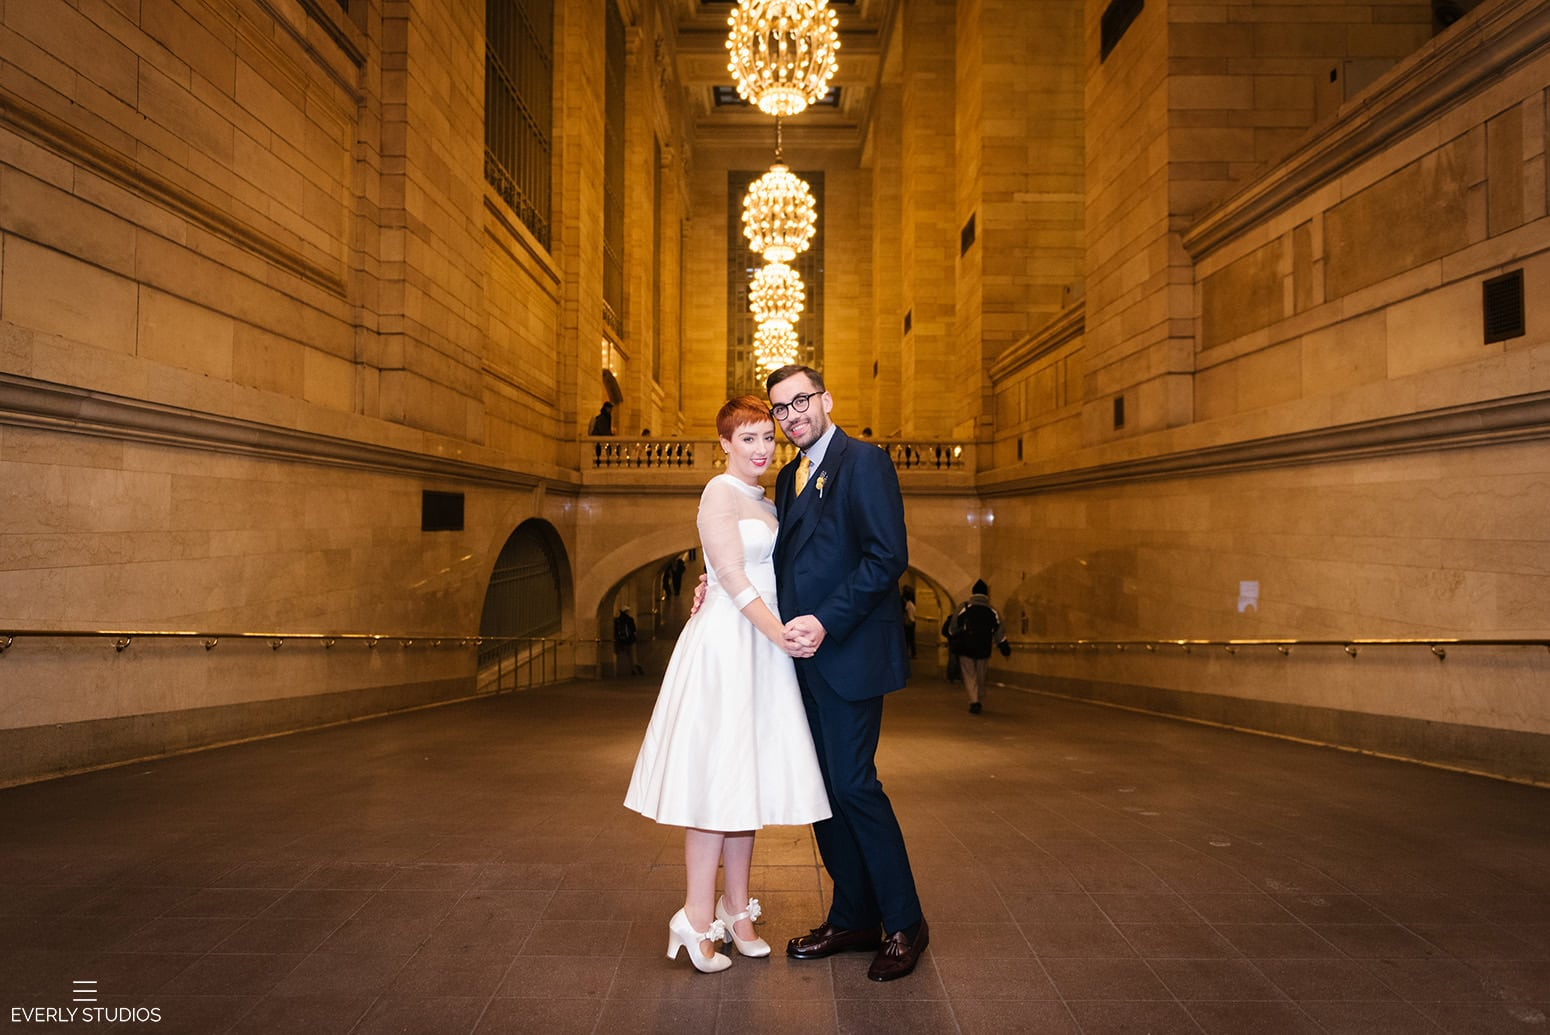 Grand Central wedding. Iconic New York wedding locations with a view. Photo by Brooklyn wedding photographer Everly Studios, www.everlystudios.com